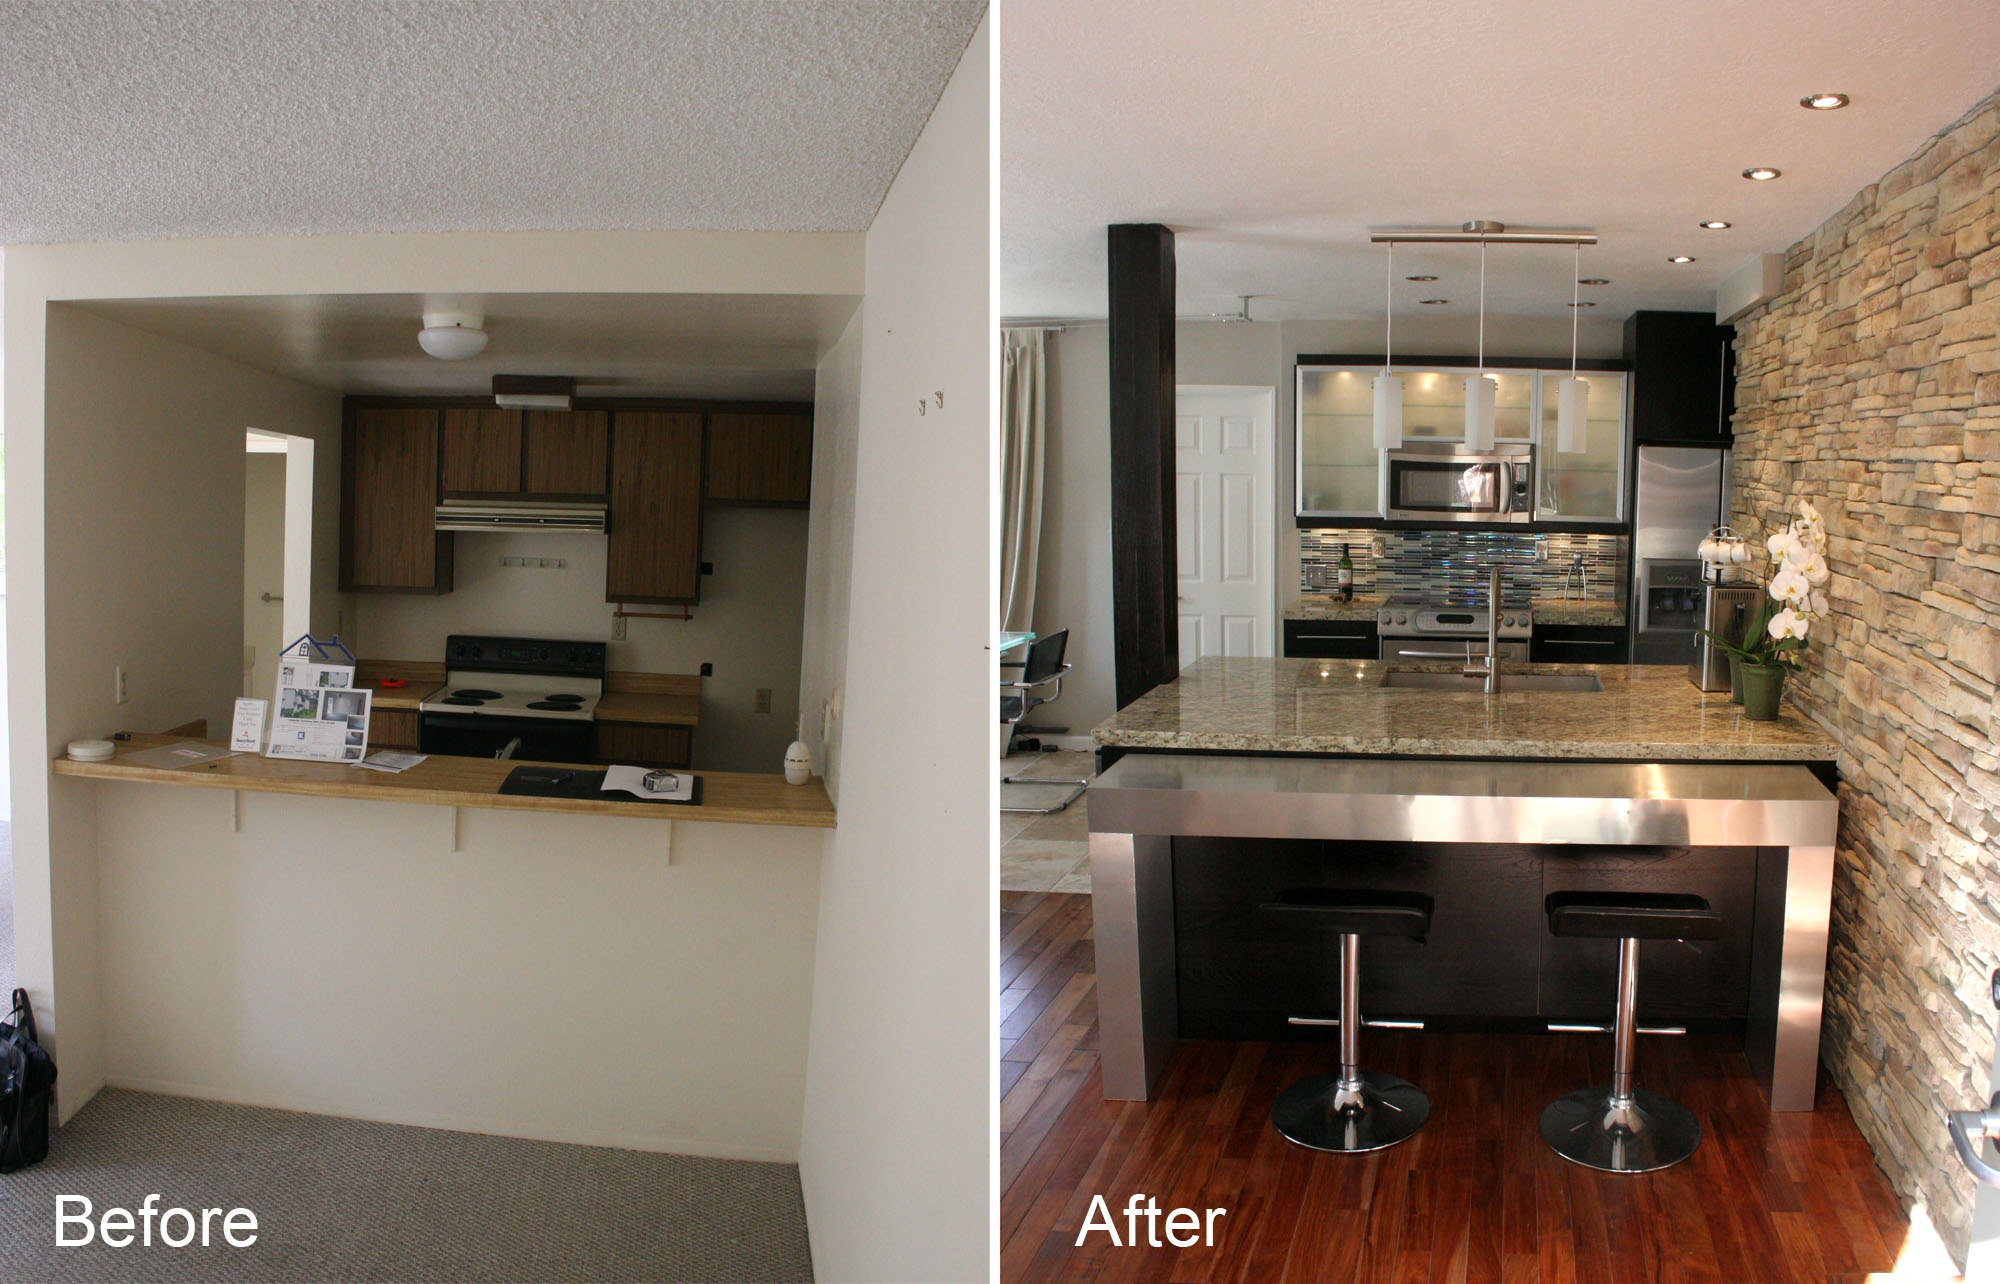 Renovation Ideas Before And After Pleasing Before And After Kitchen Remodel  Home Design Review